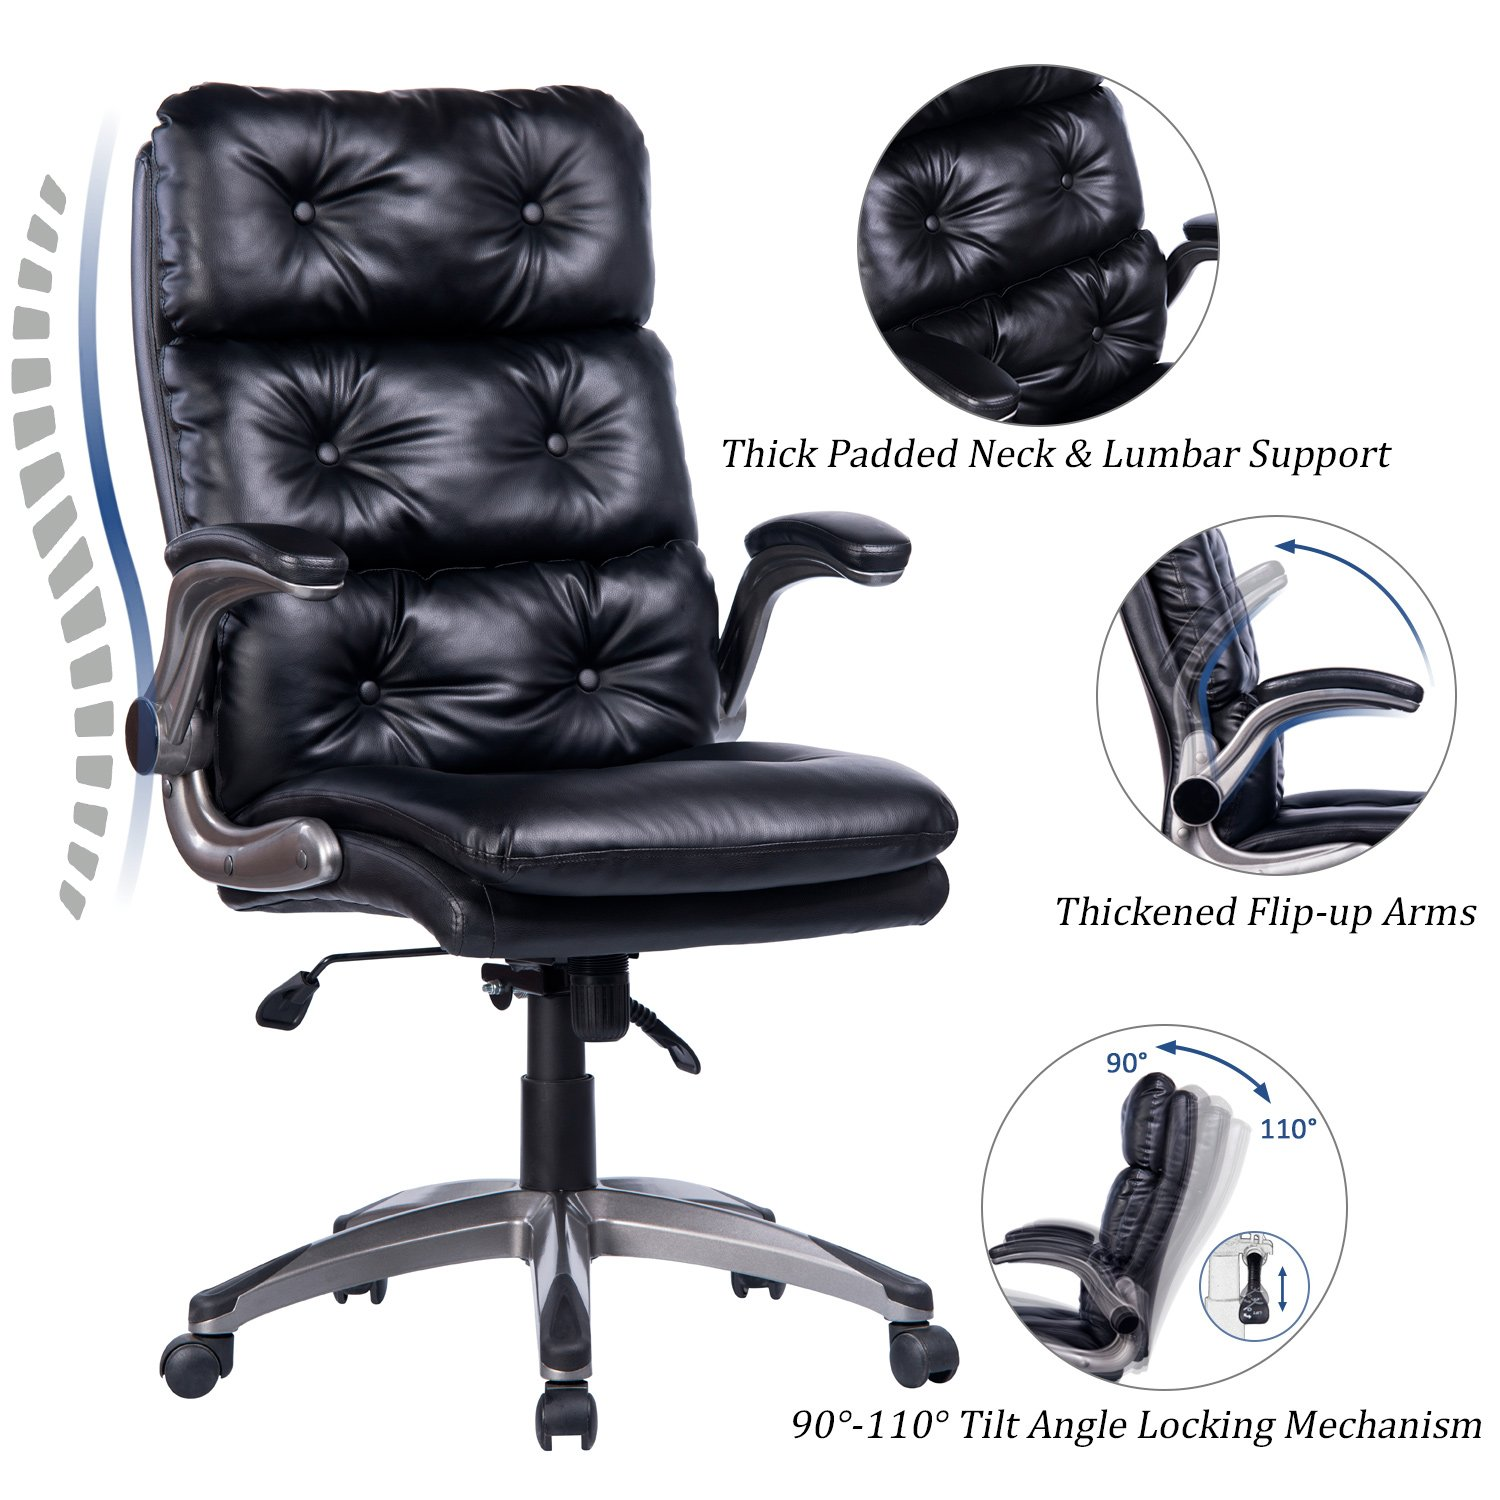 VANBOW High Back Office Chair - Ergonomic Tufted Bonded Leather Computer Desk Executive Chair, Adjustable Flip-Up Arms, Double Padded Backrest Seat Cushion 360 Degree Rotation, Black